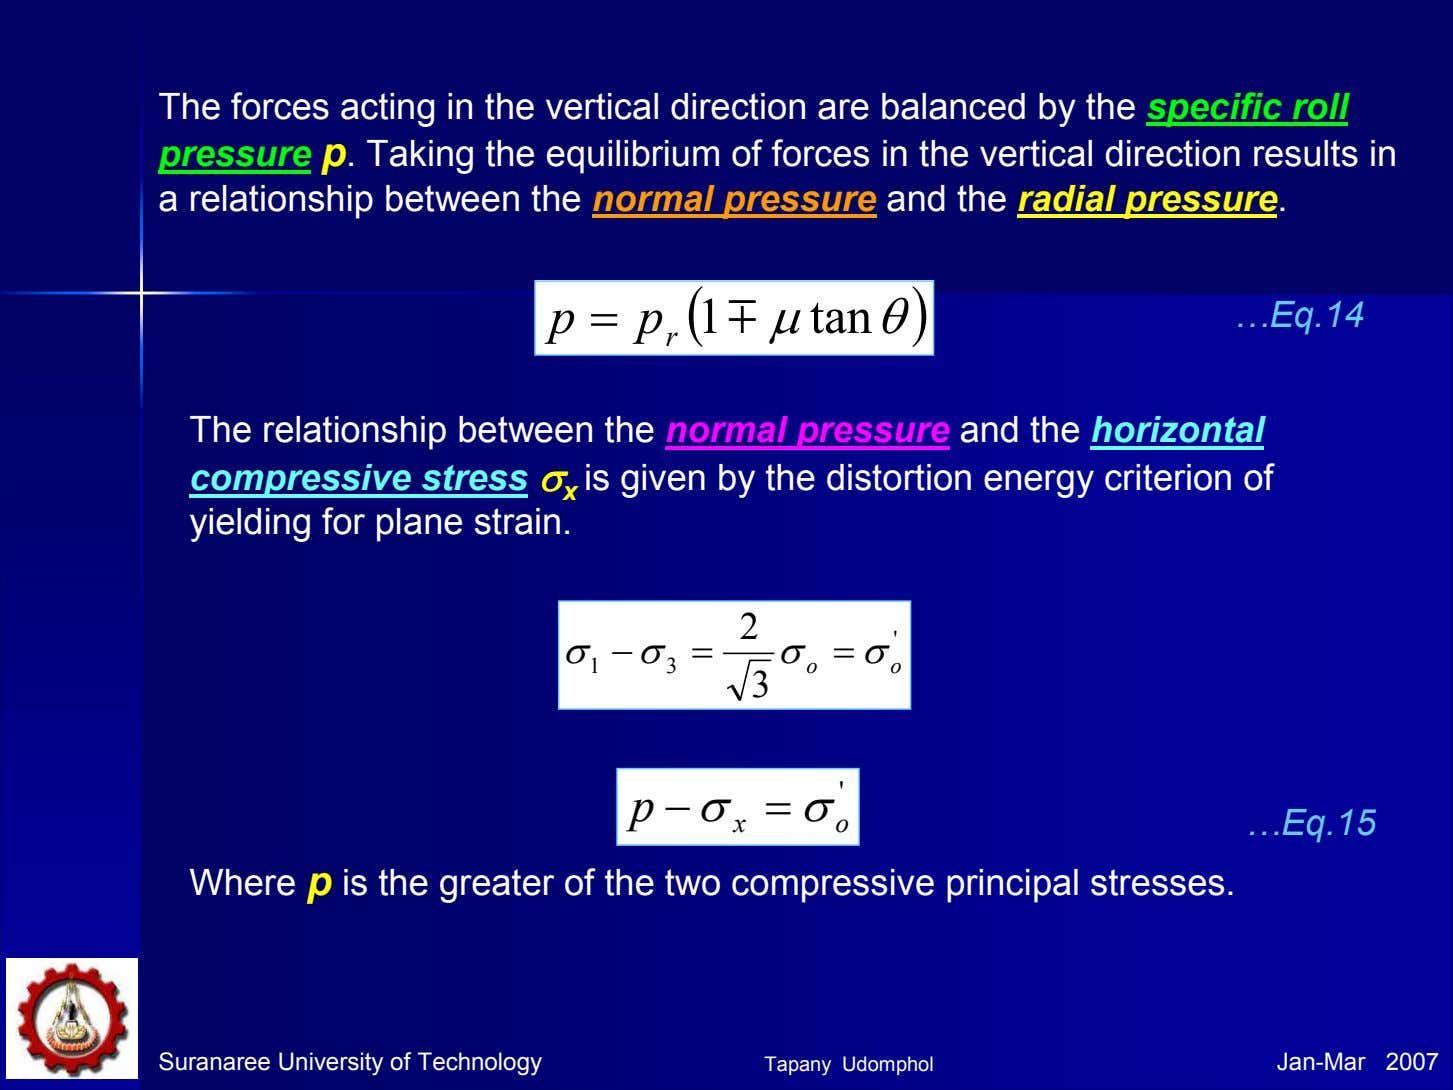 The forces acting in the vertical direction are balanced by the specific roll pressure p.